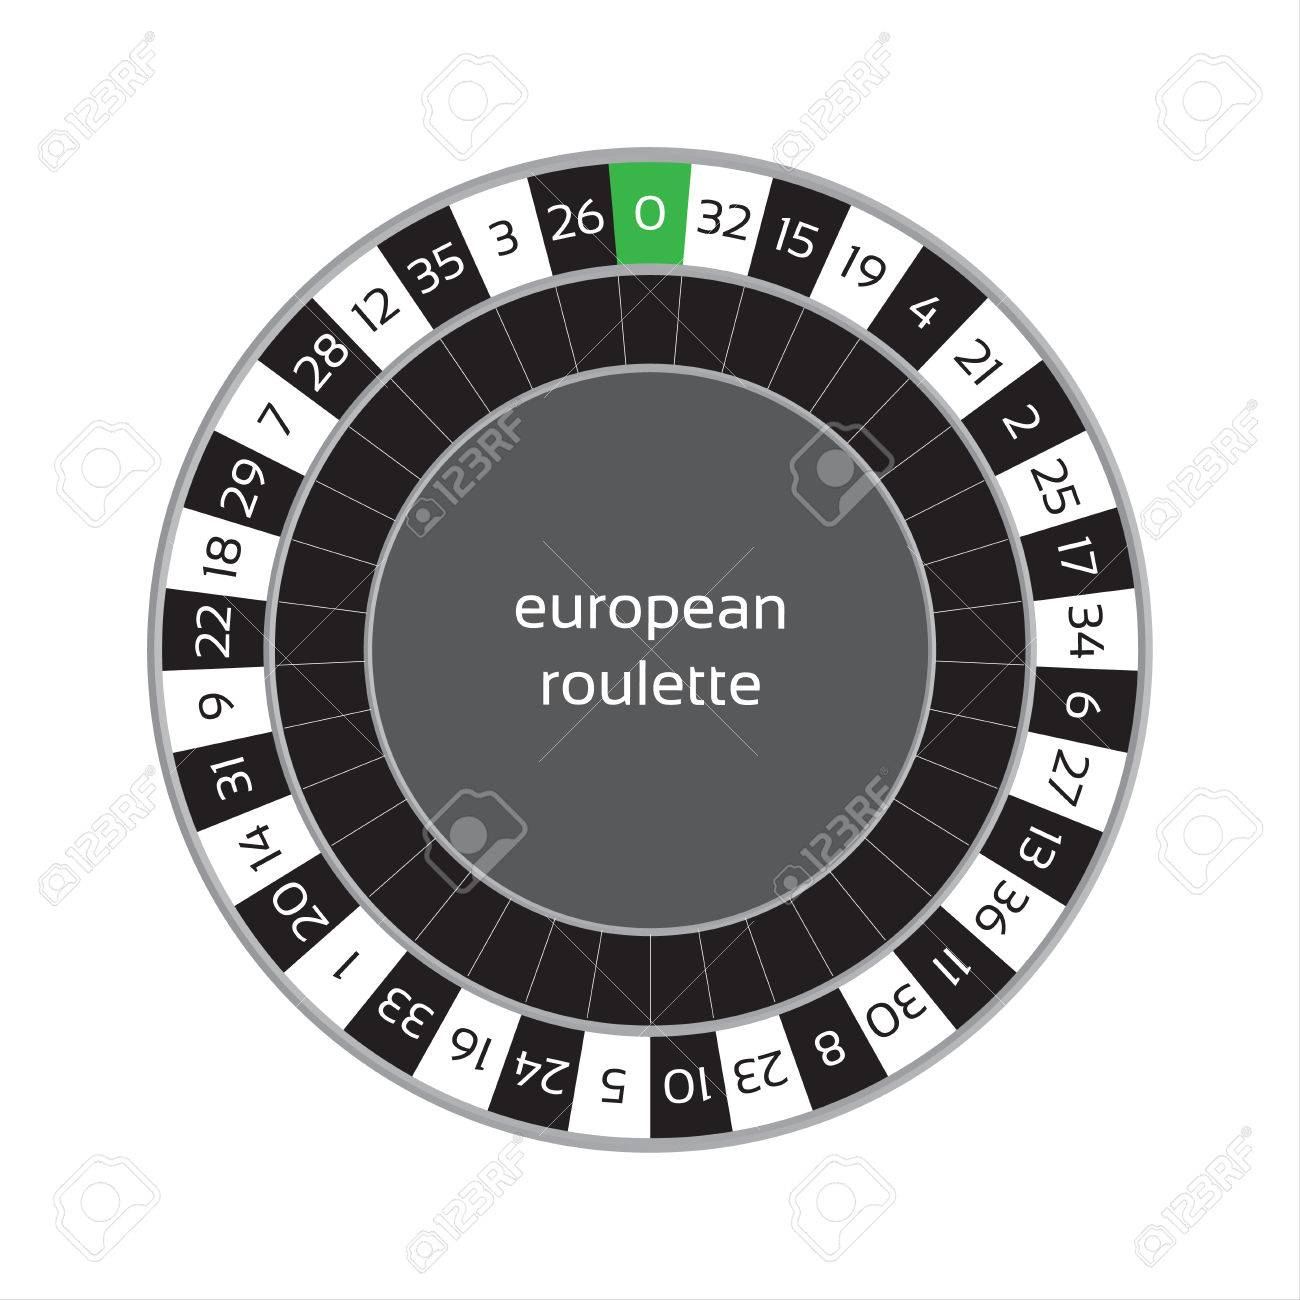 Traditional european roulette table vector illustration stock vector - American Roulette Wheel Illustration Of European Roulette Wheel Isolated On White Background Illustration